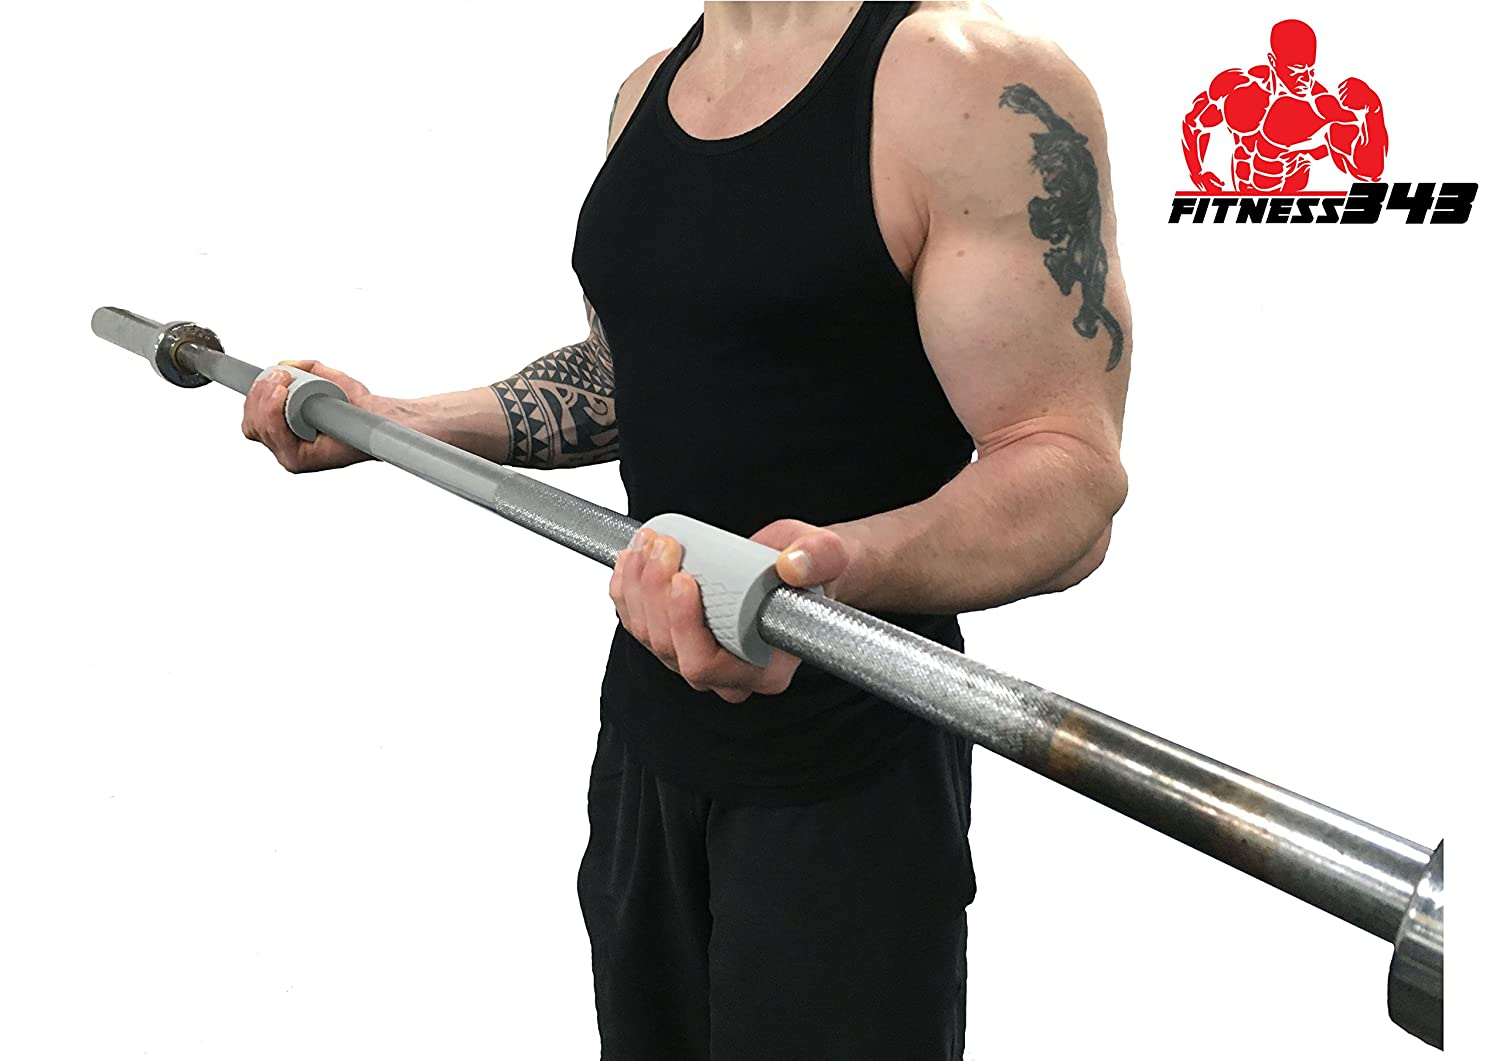 - Made From Comfortable and Durable Non-slip Silicone Rubber 2 Thick Bar Grips 60LB /& 70LB Resistance THE ULTIMATE FOREARM BUNDLE 2 Forearm Grip Rings Quality Manufactured 100/% refundable Fitness343 Bar Grips